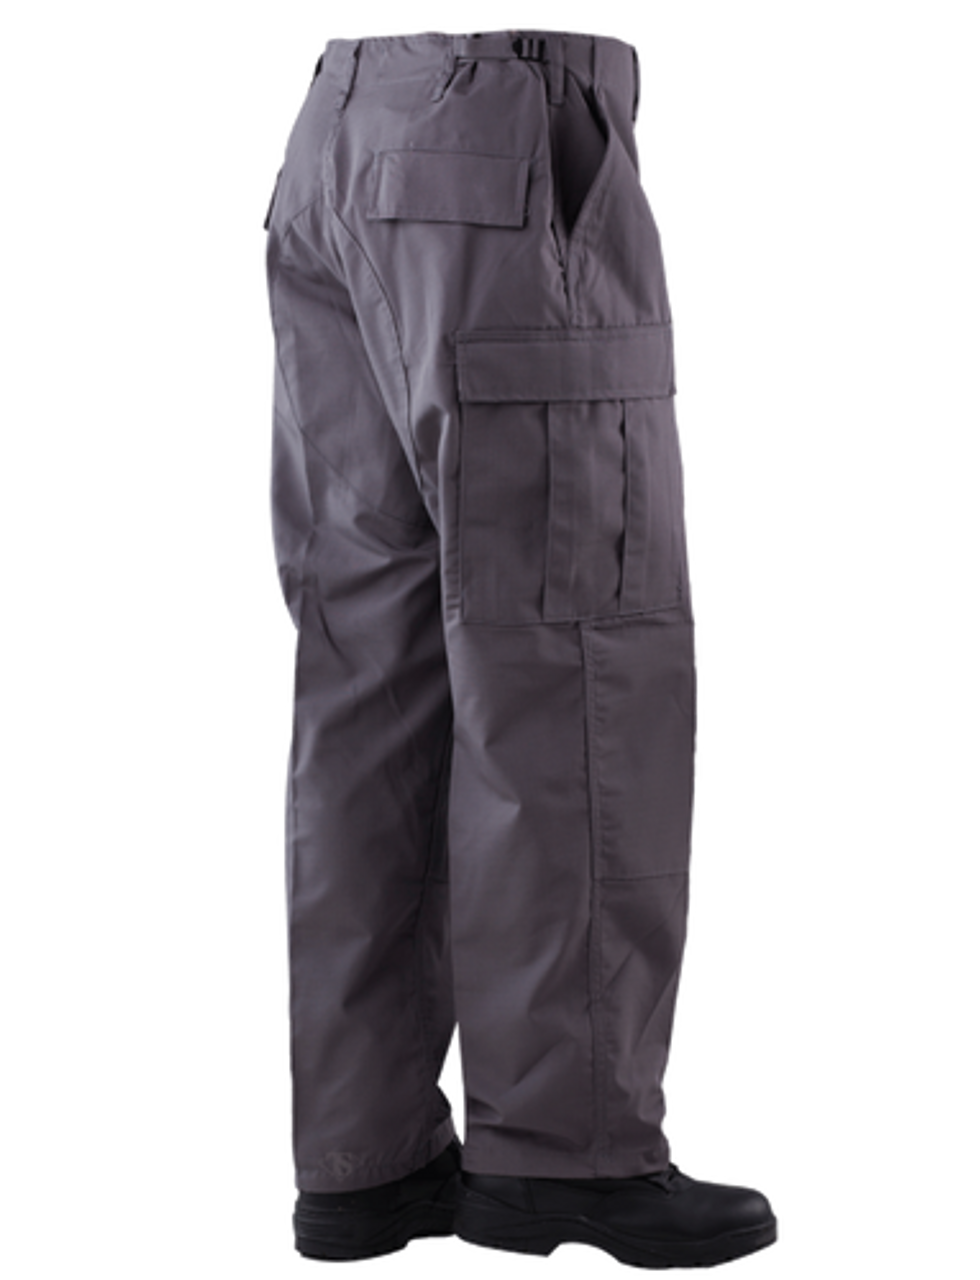 Tru-Spec 1304 Men's BDU Uniform Tactical Pants, Cargo, Relaxed Fit, 65% Vat Dyed Polyester/Cotton 35% Rip-Stop, Drawstring Leg Ties